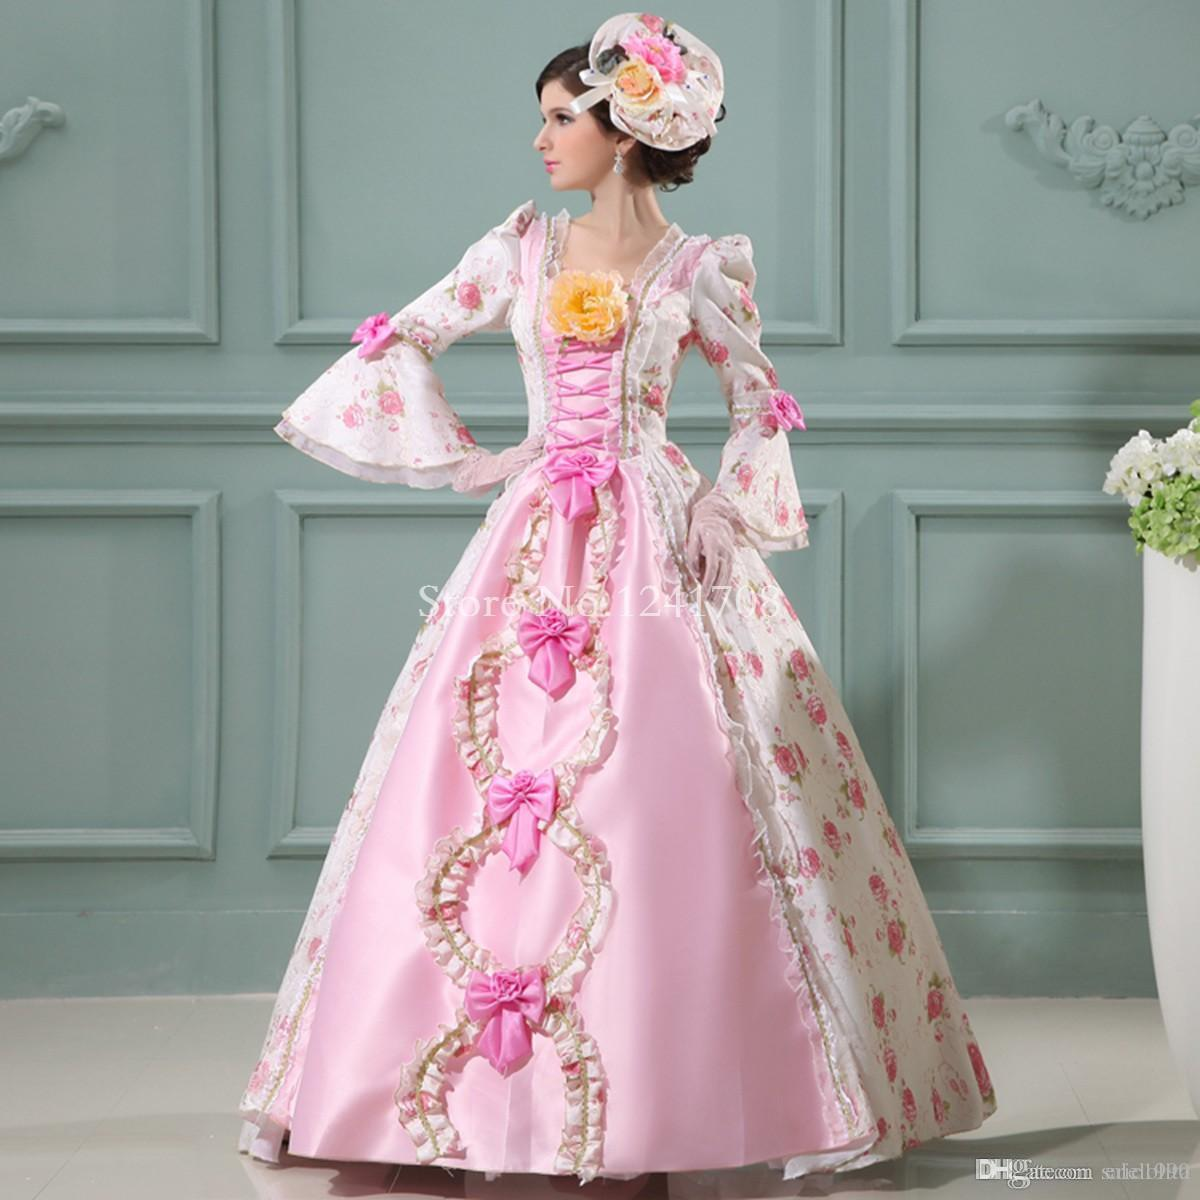 Best Sell Pink Baroque Rococo 17th 18th Century Marie Antoinette Floral Wedding Party Dress European Court Period Dress Costume